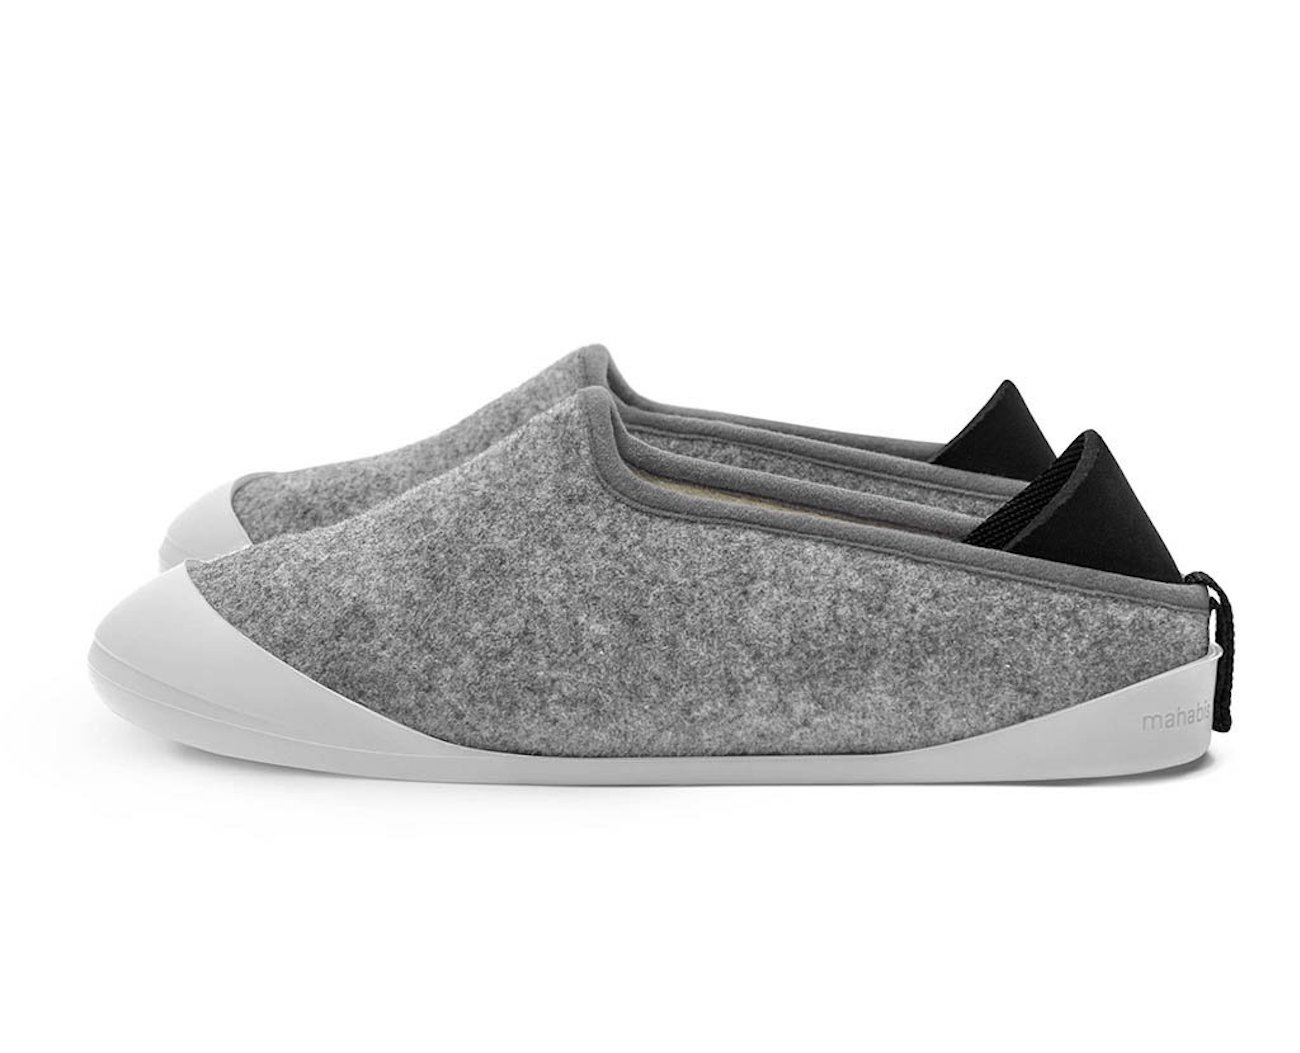 Mahabis Classic Removable Sole Slippers